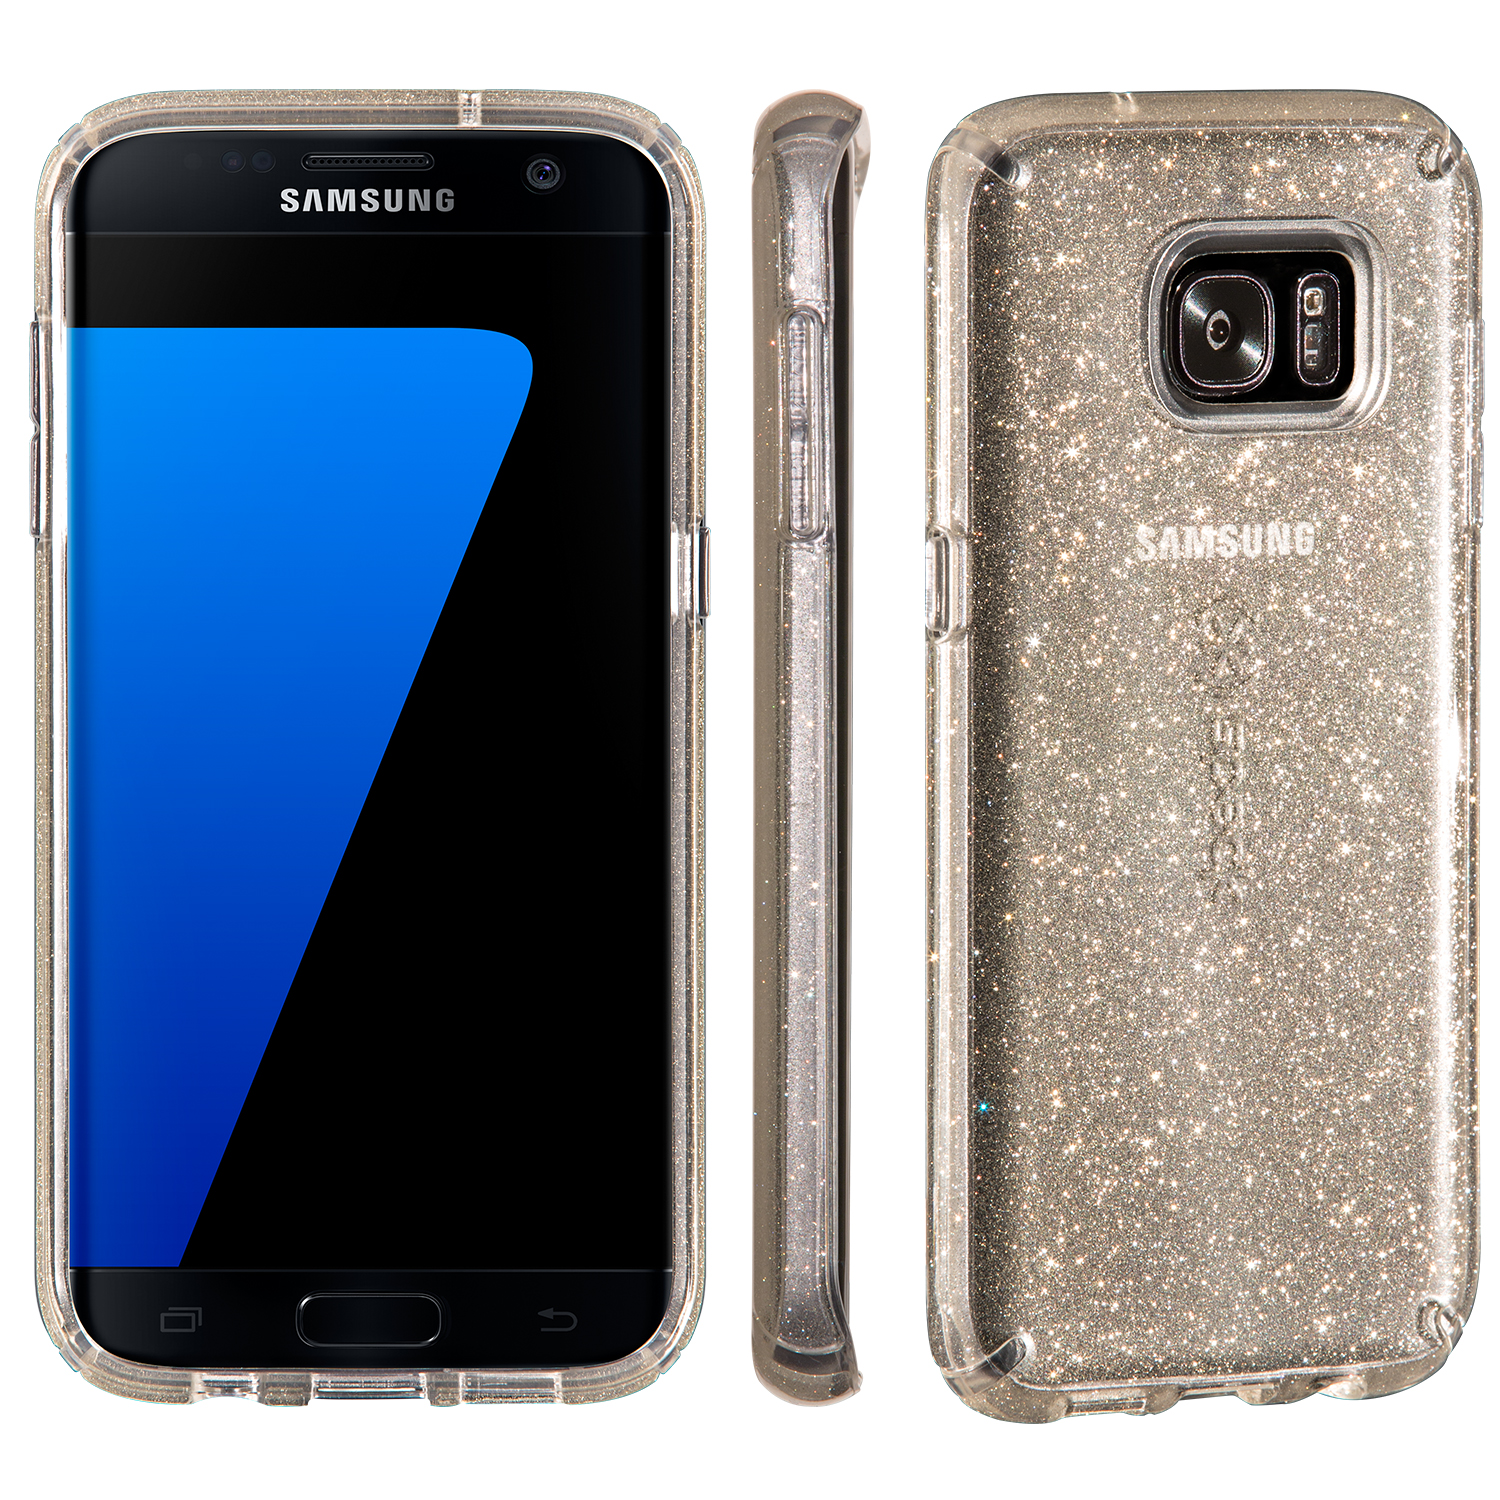 Search and compare best prices of Speck CandyShell Clear with Glitter Samsung Galaxy S7 edge Cases Clear/Gold Glitter in UK